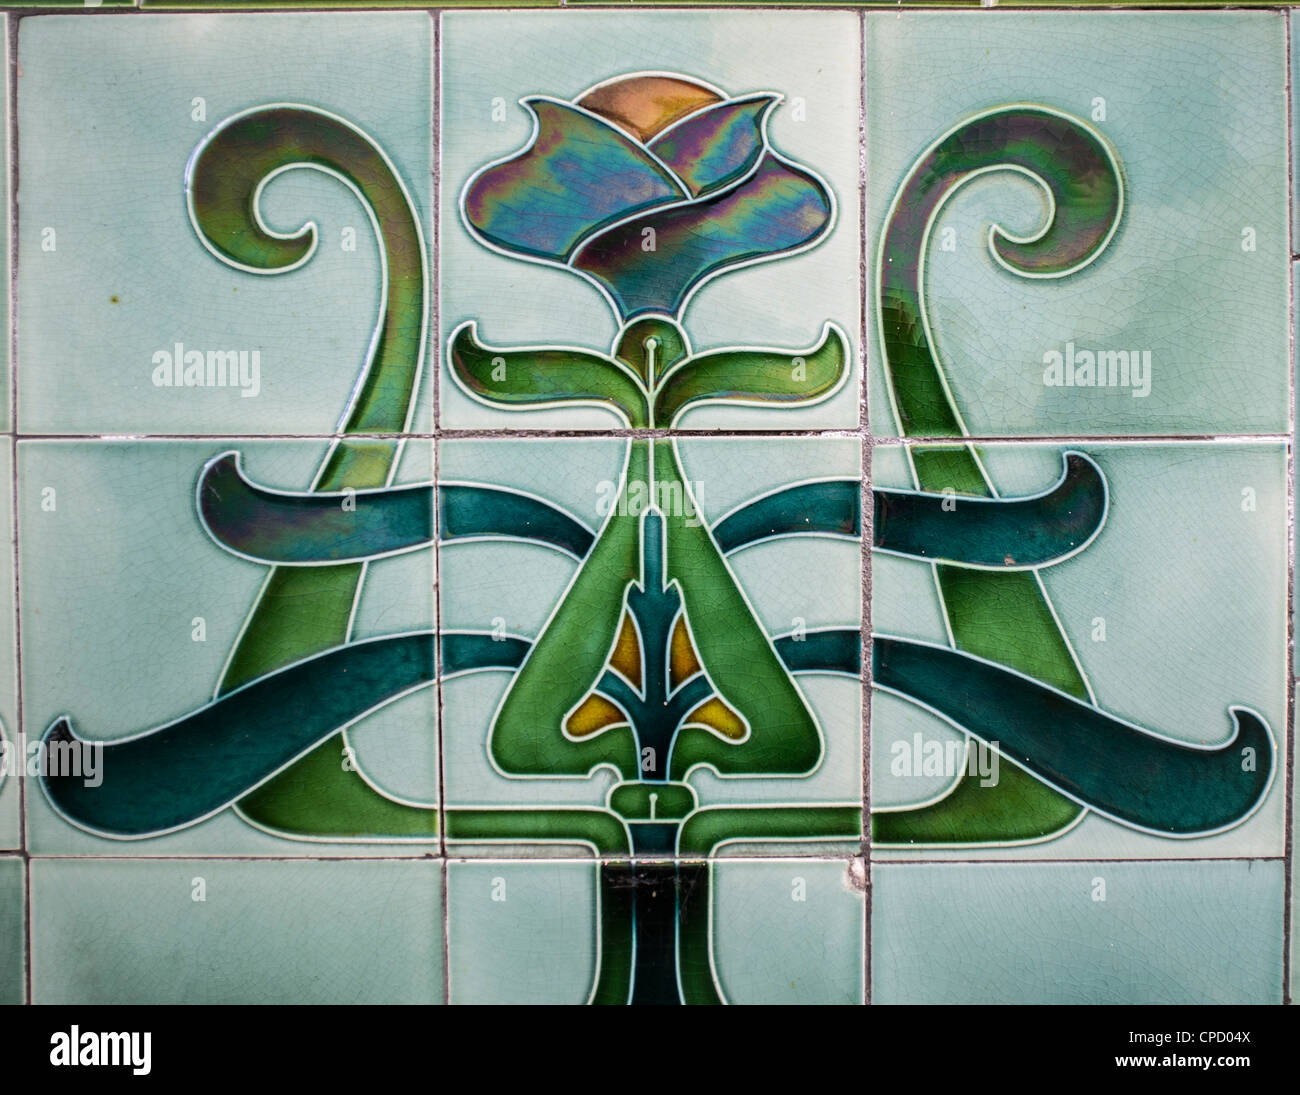 Ornate Green Art Deco Ceramic Wall Tiles, UK Part 79